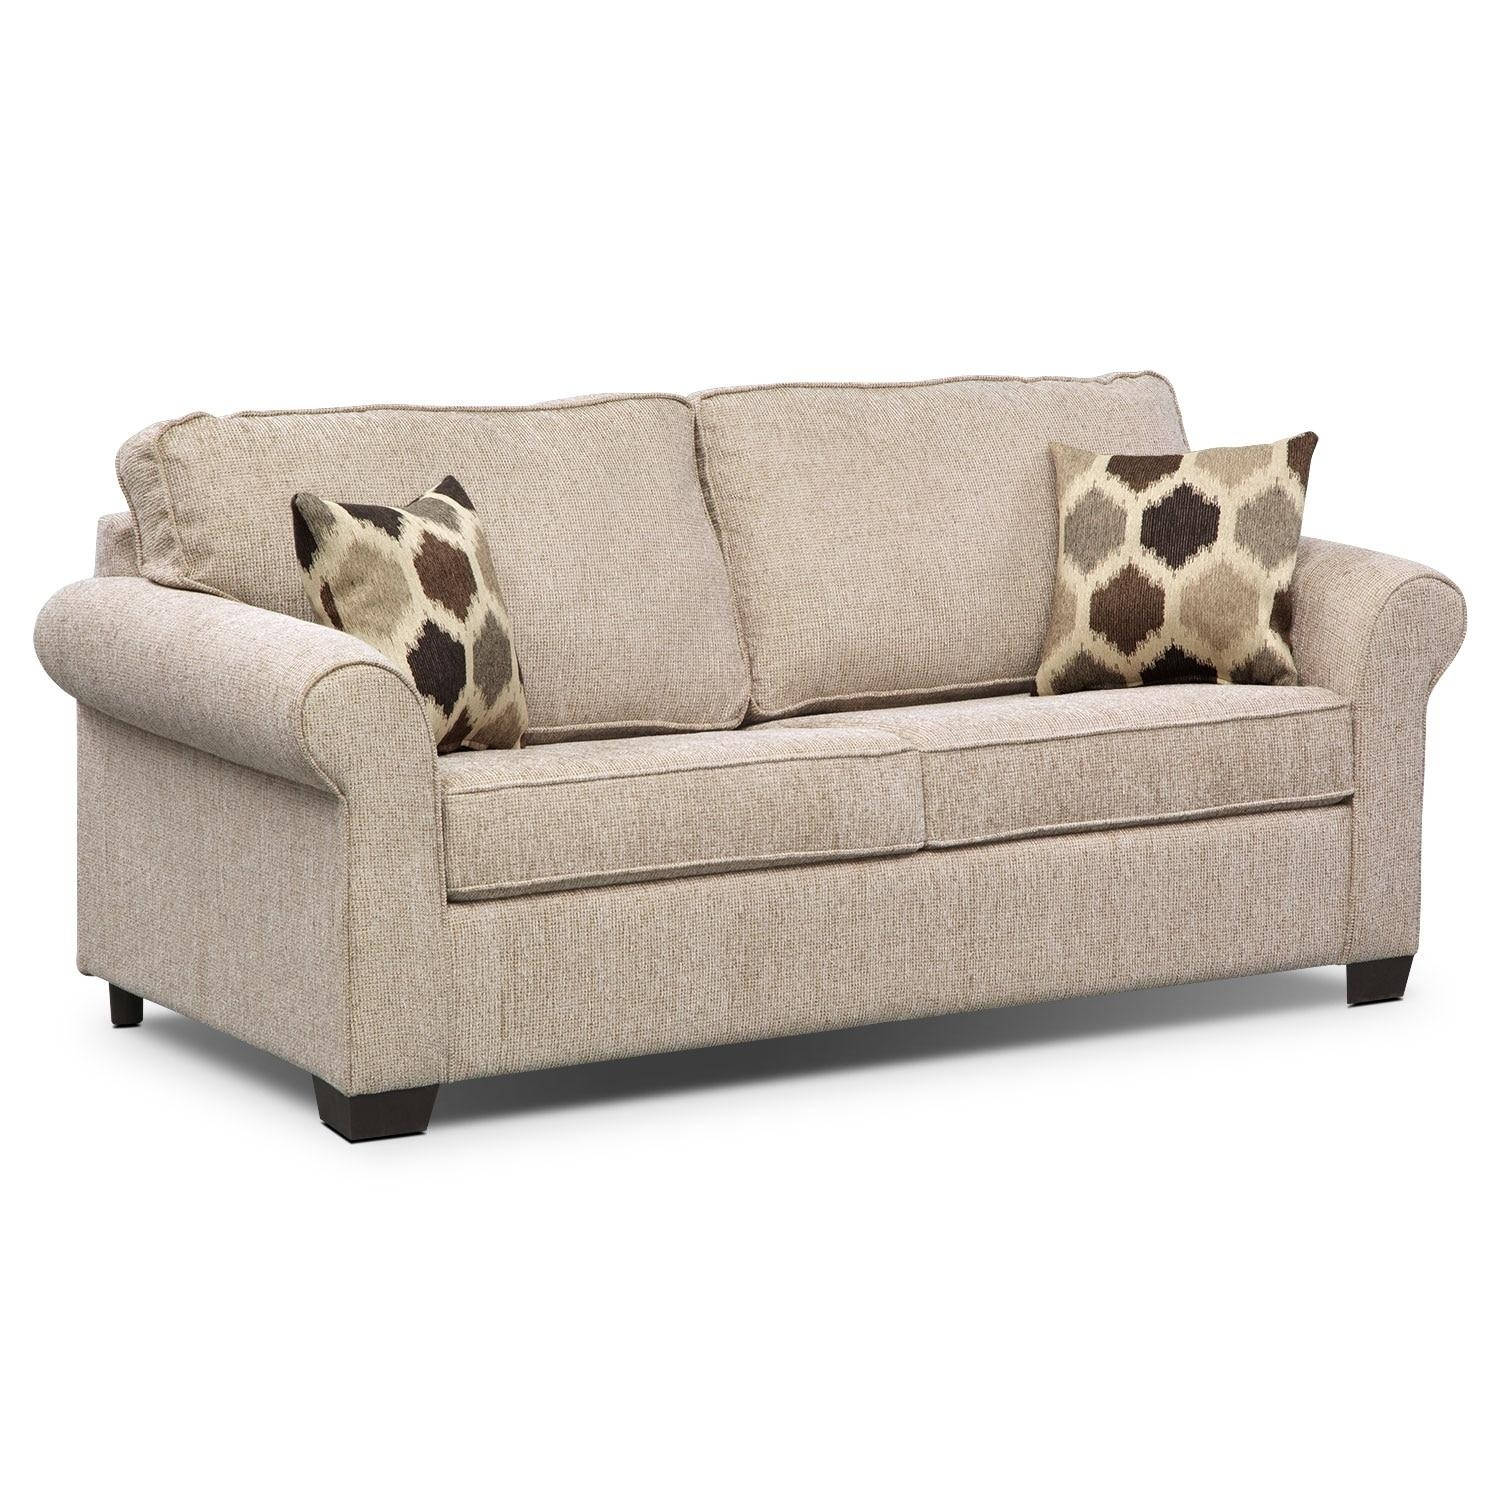 Sleeper Sofas | Value City Furniture | Value City Furniture In Slipper Sofas (View 3 of 20)